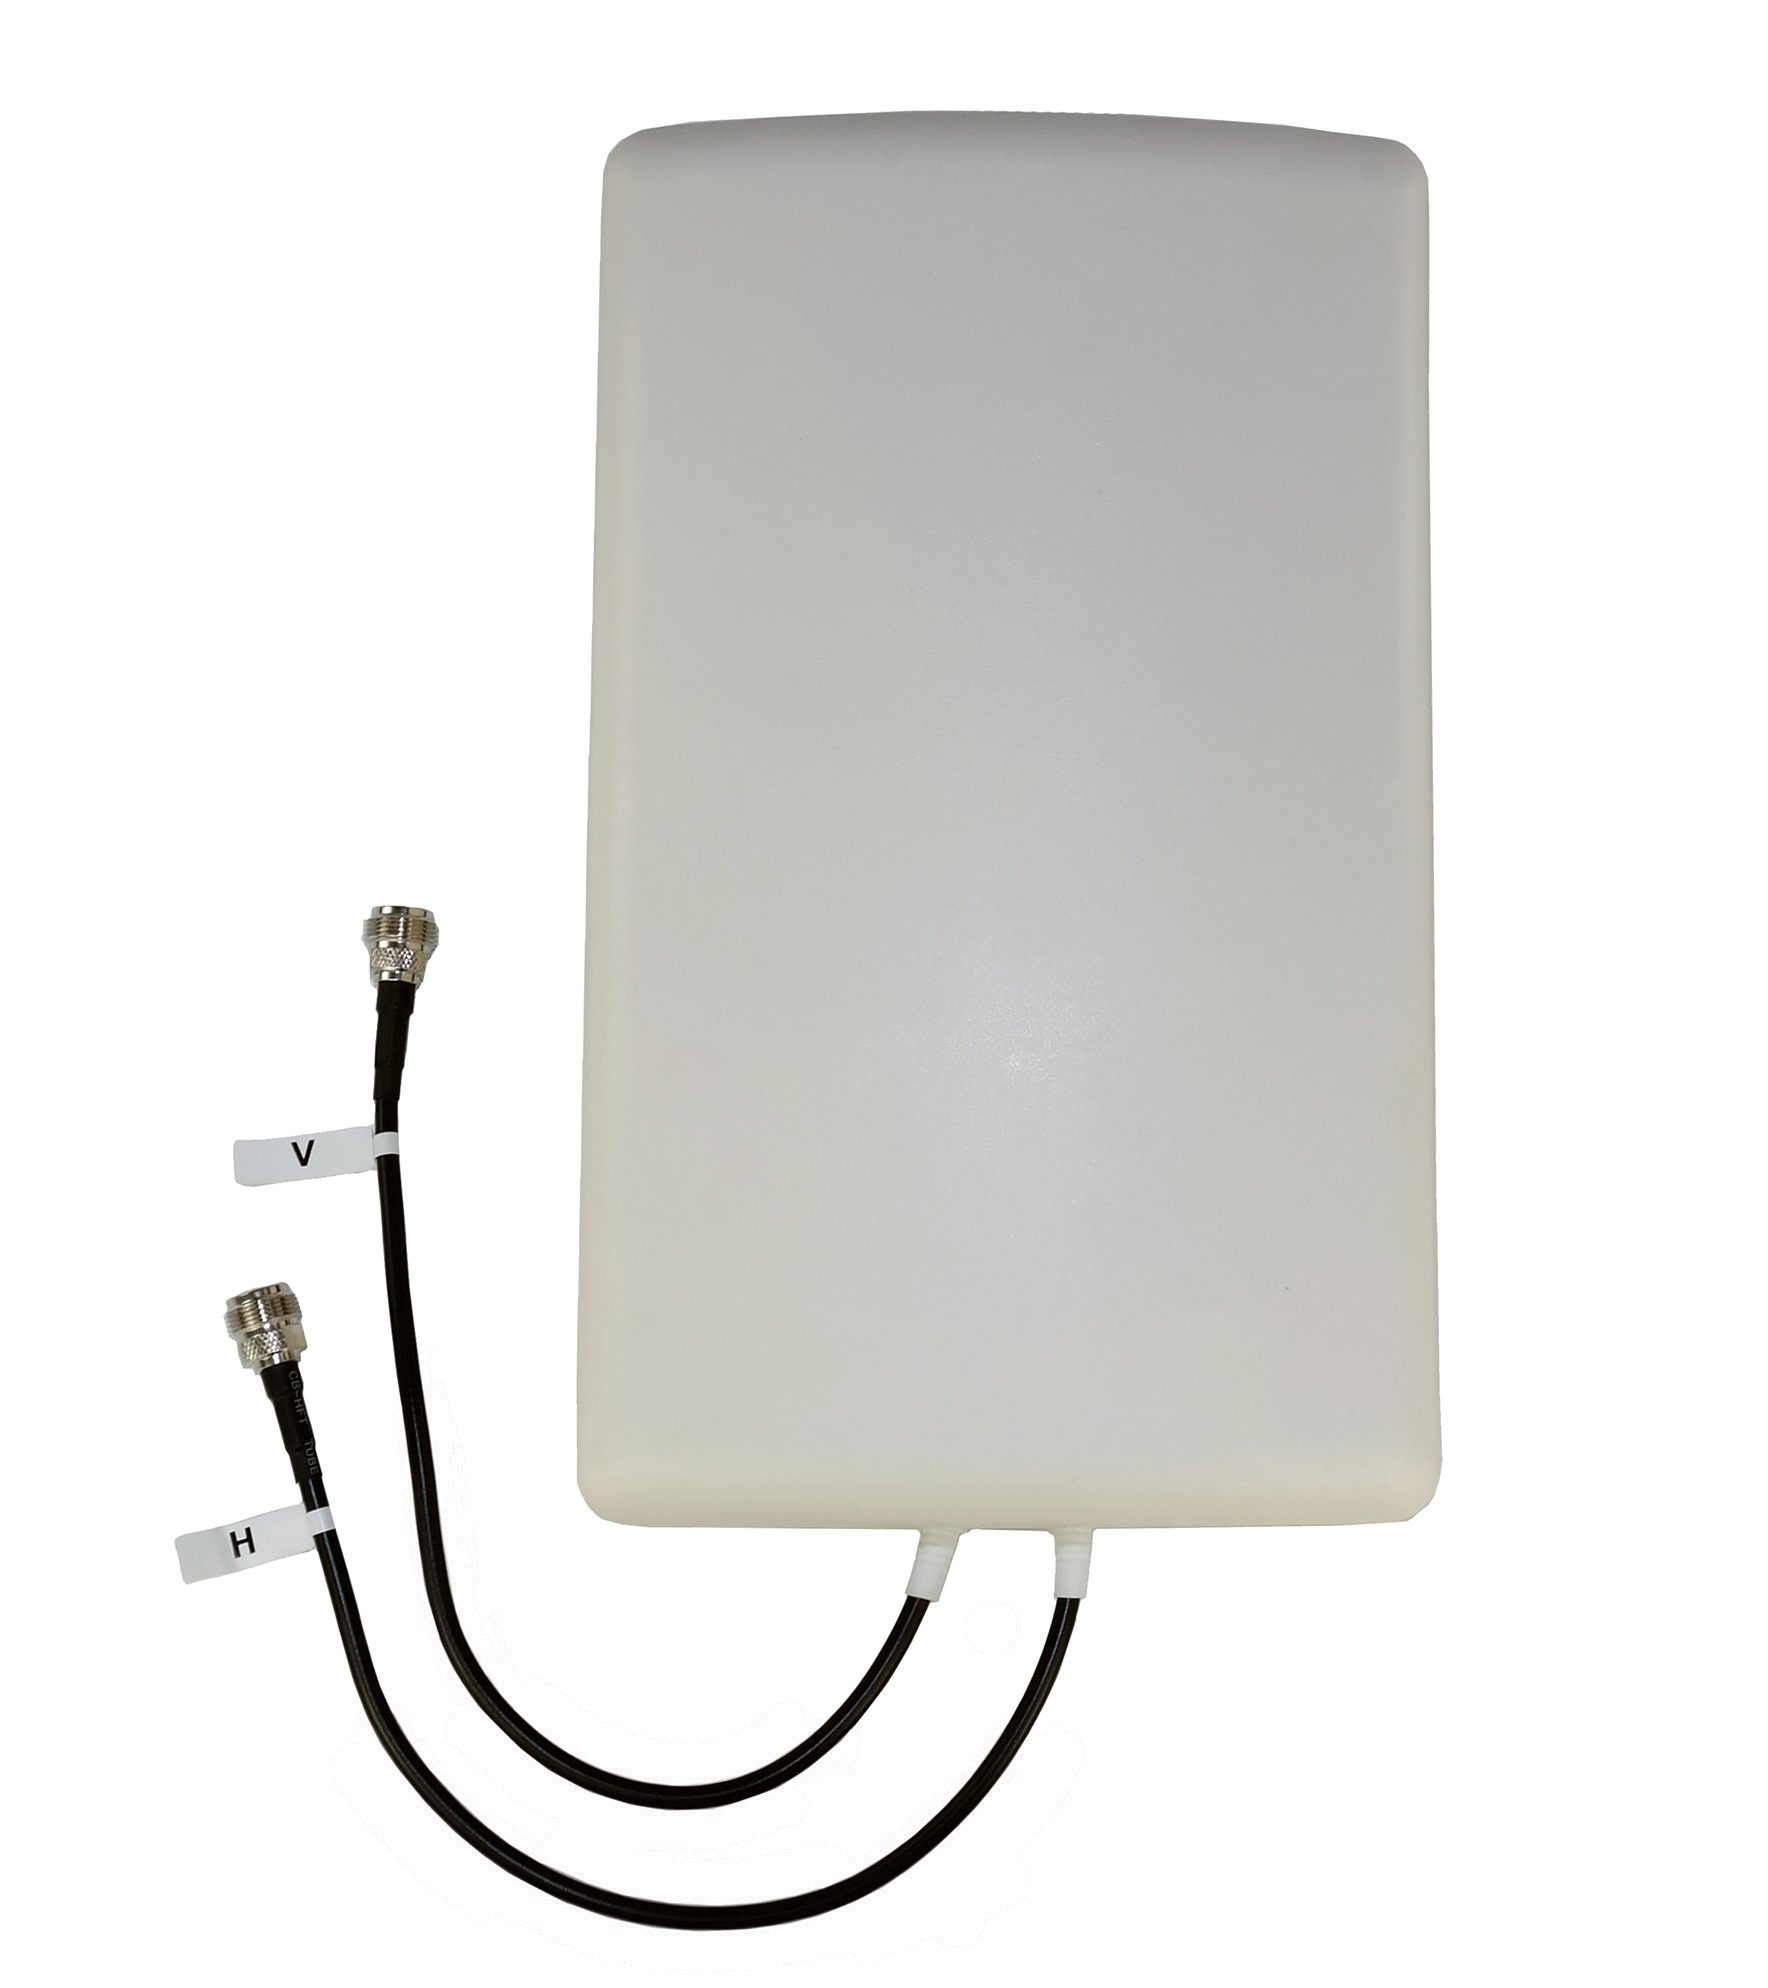 Proxicast 4G/LTE Cross-Polarized (MIMO) 7-10 dBi High-Gain Fixed-Mount Panel Antenna